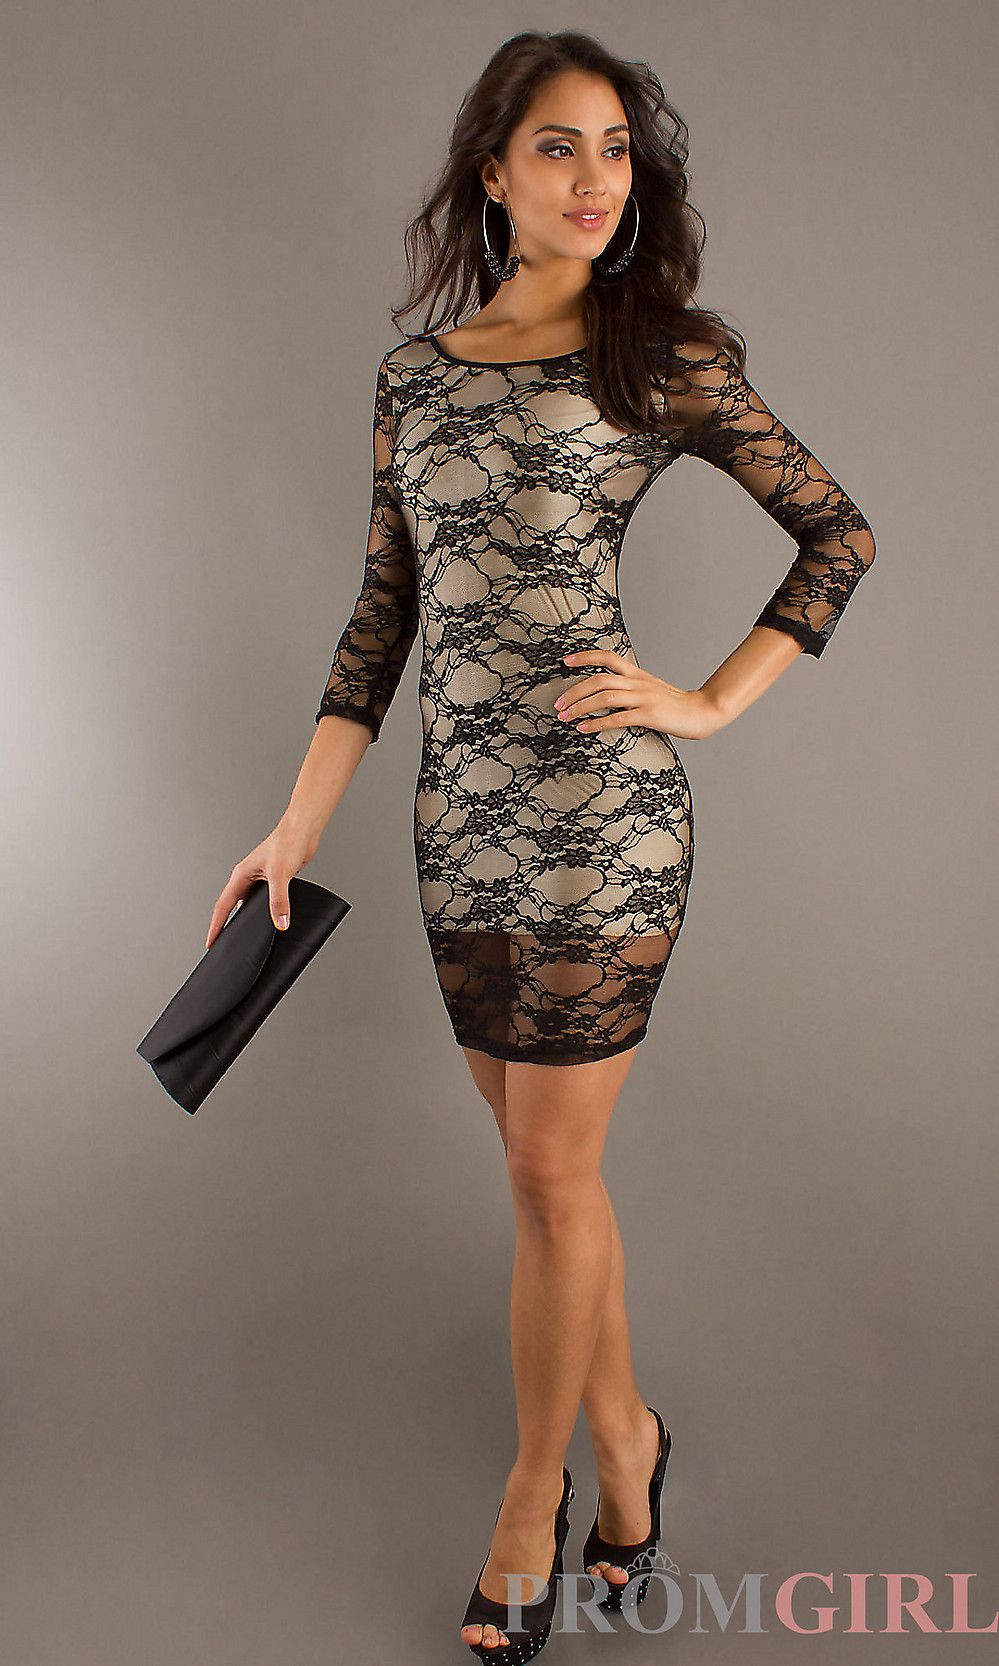 Black lace cocktail dress if i had the body pinterest black